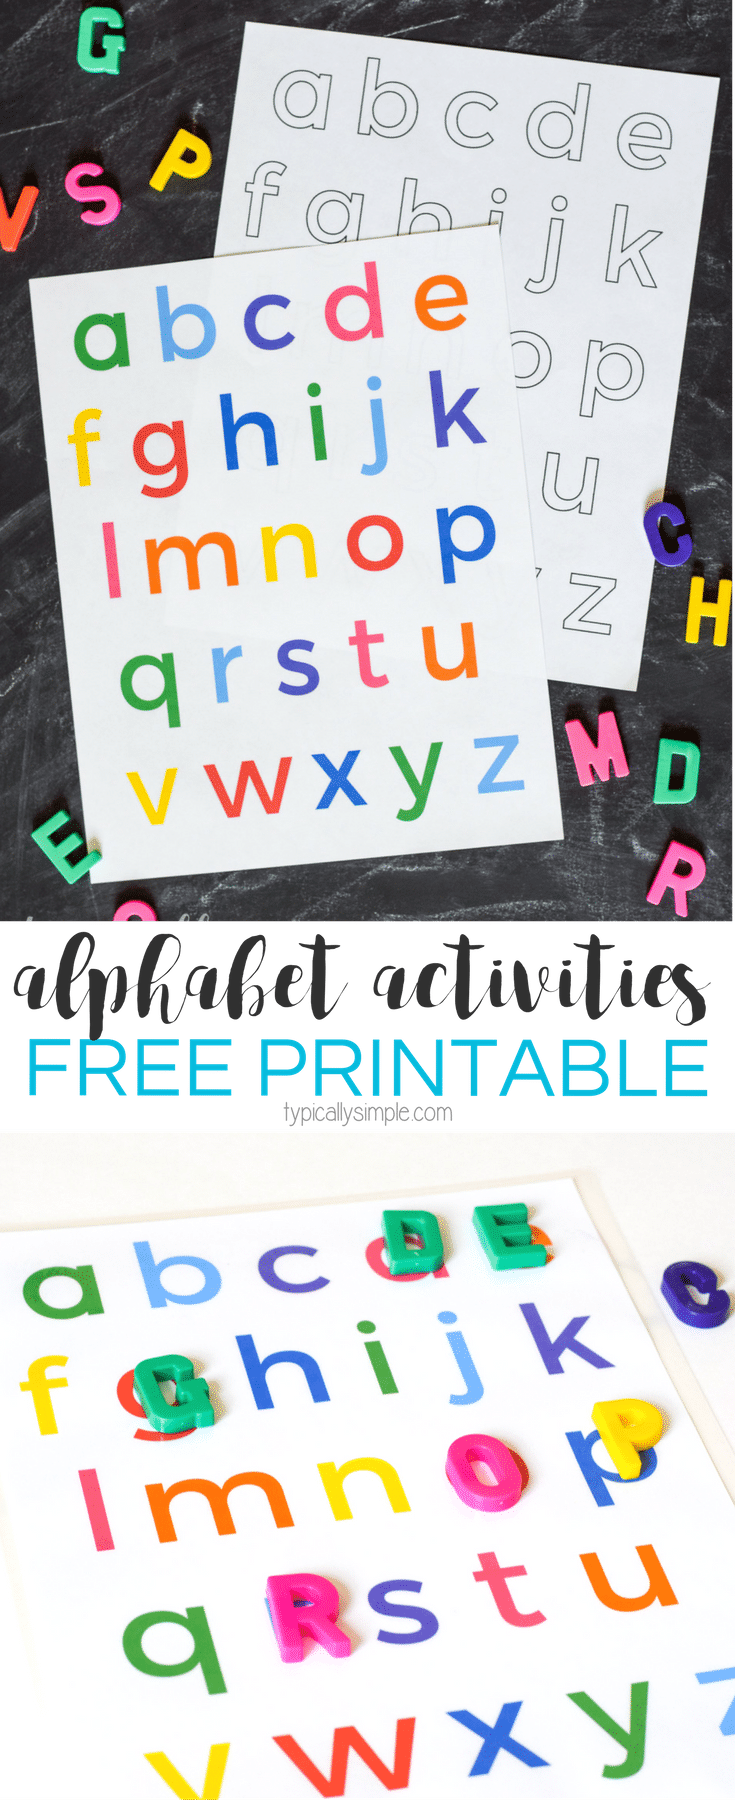 use this free printable of the lowercase letters to help build letter awareness through alphabet activities